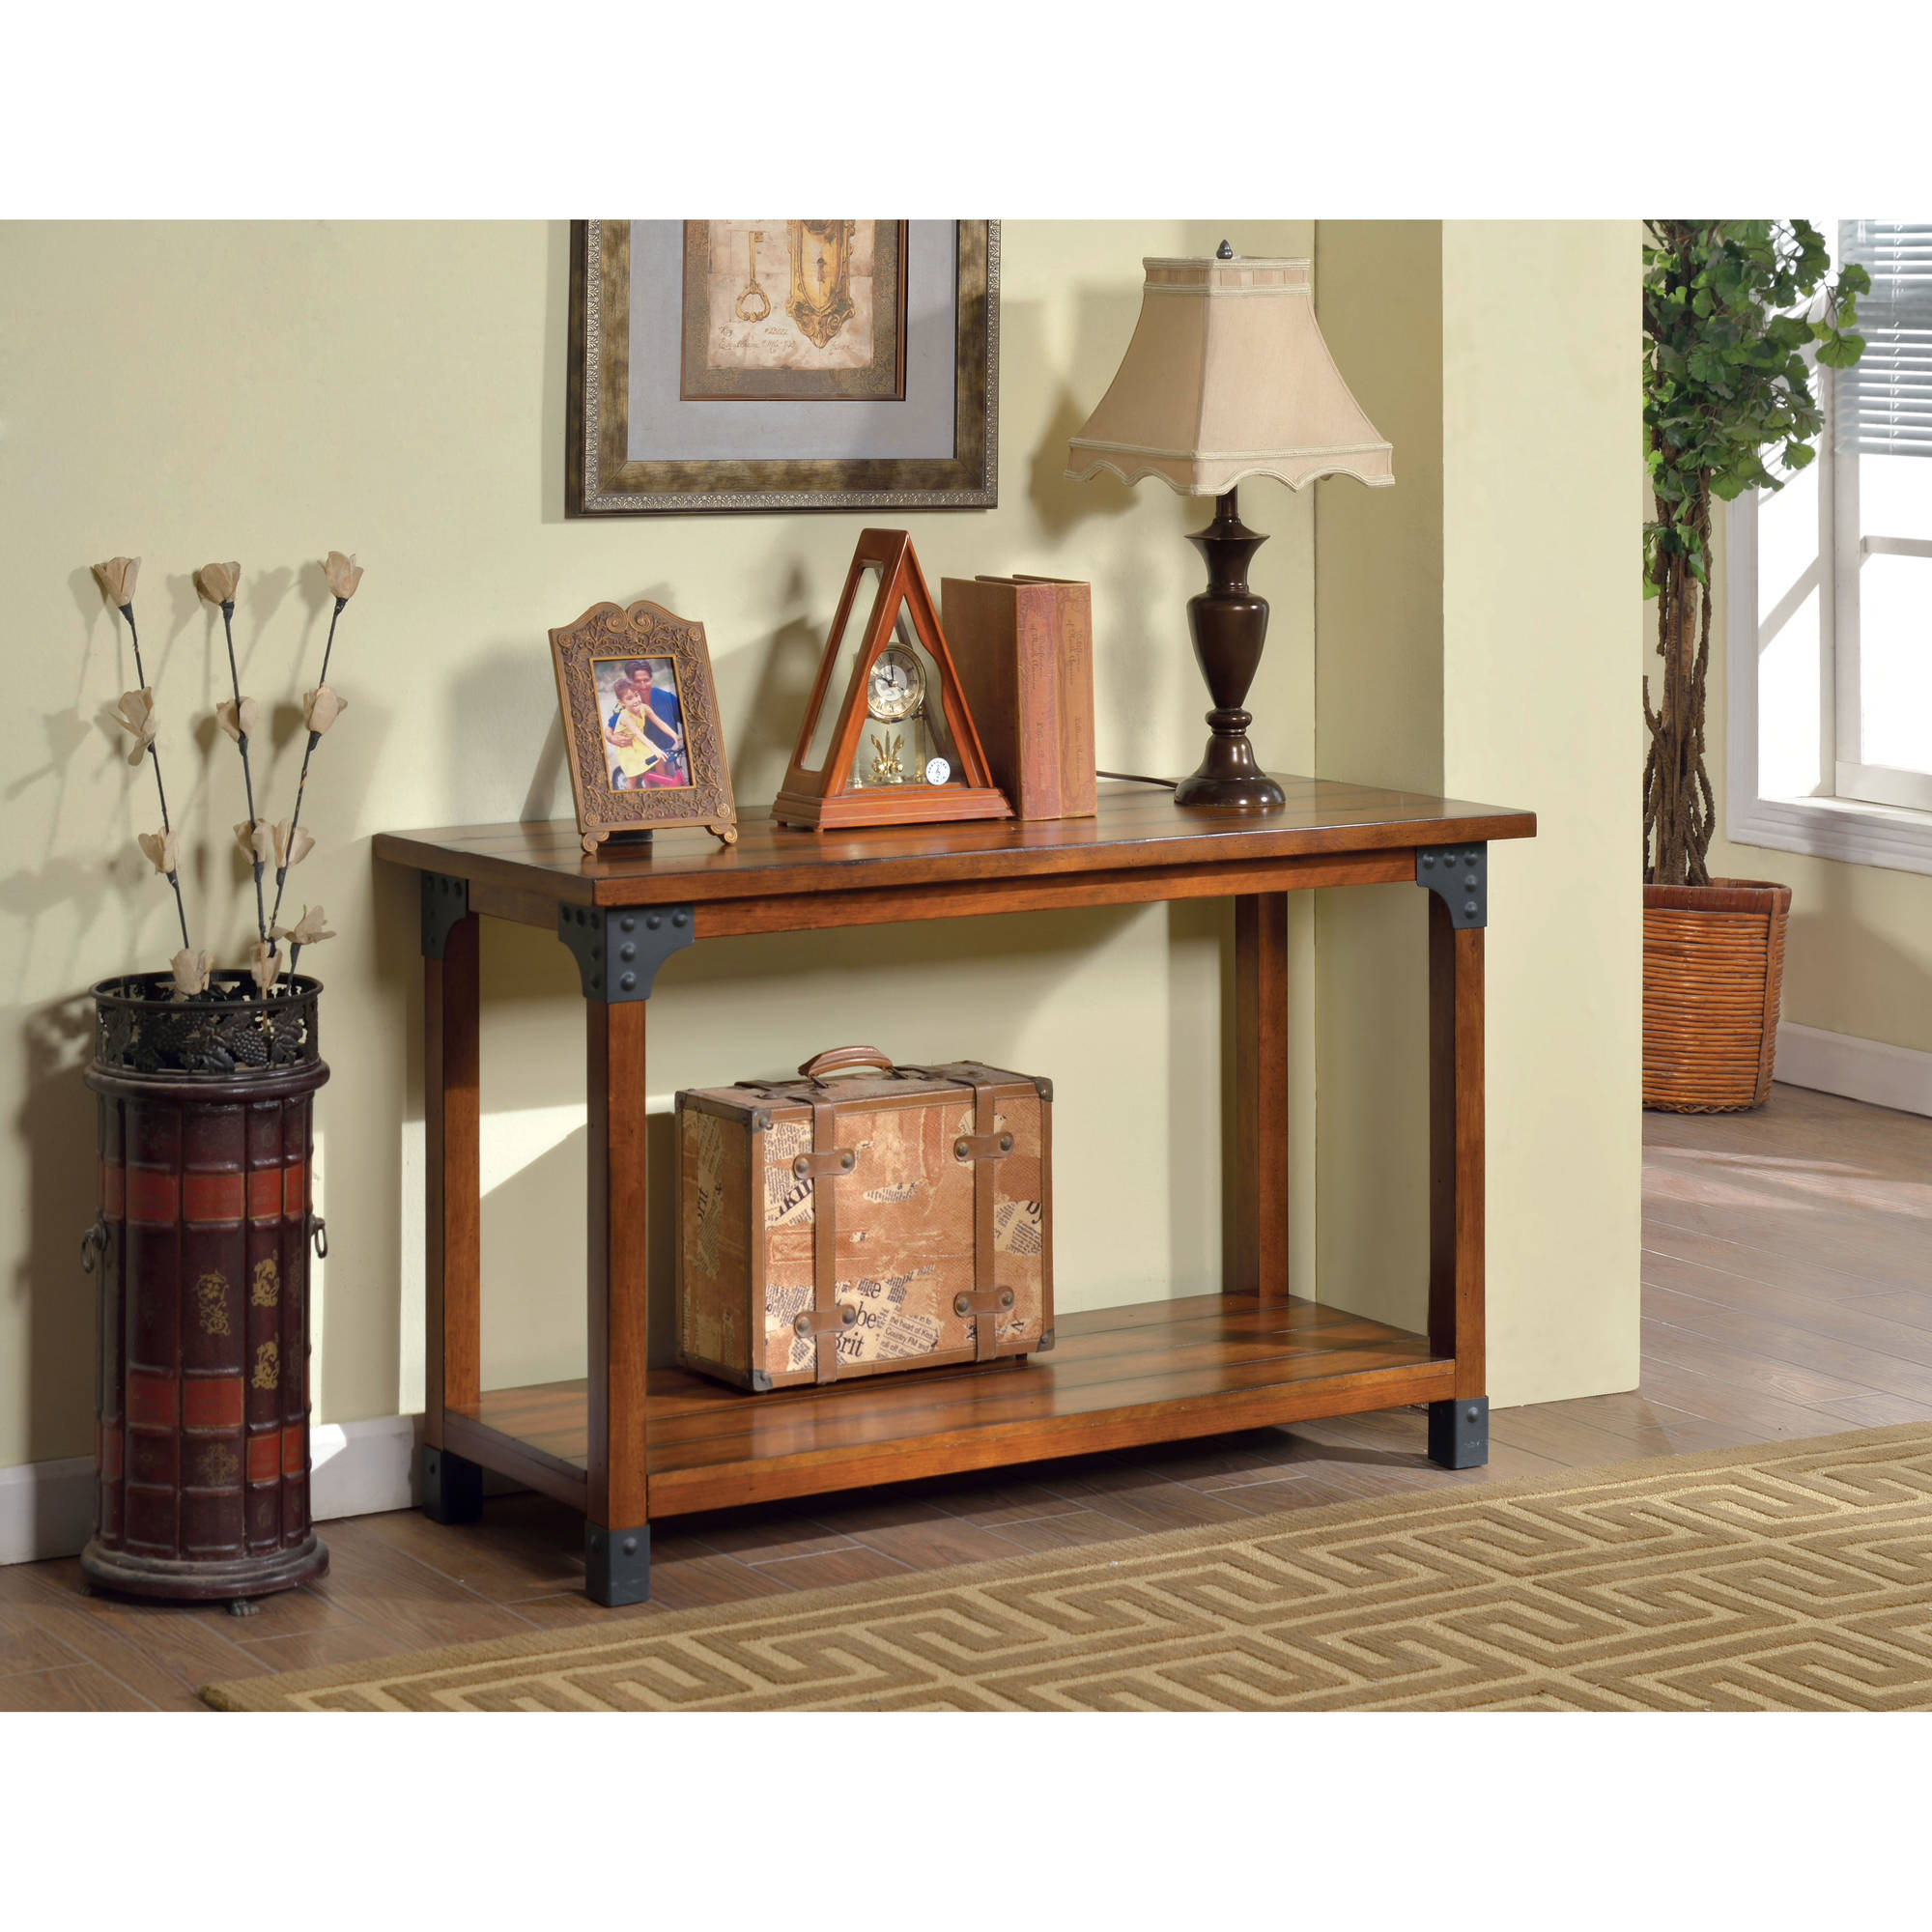 Furniture of America Firkins Country Sofa Table, Antique Oak